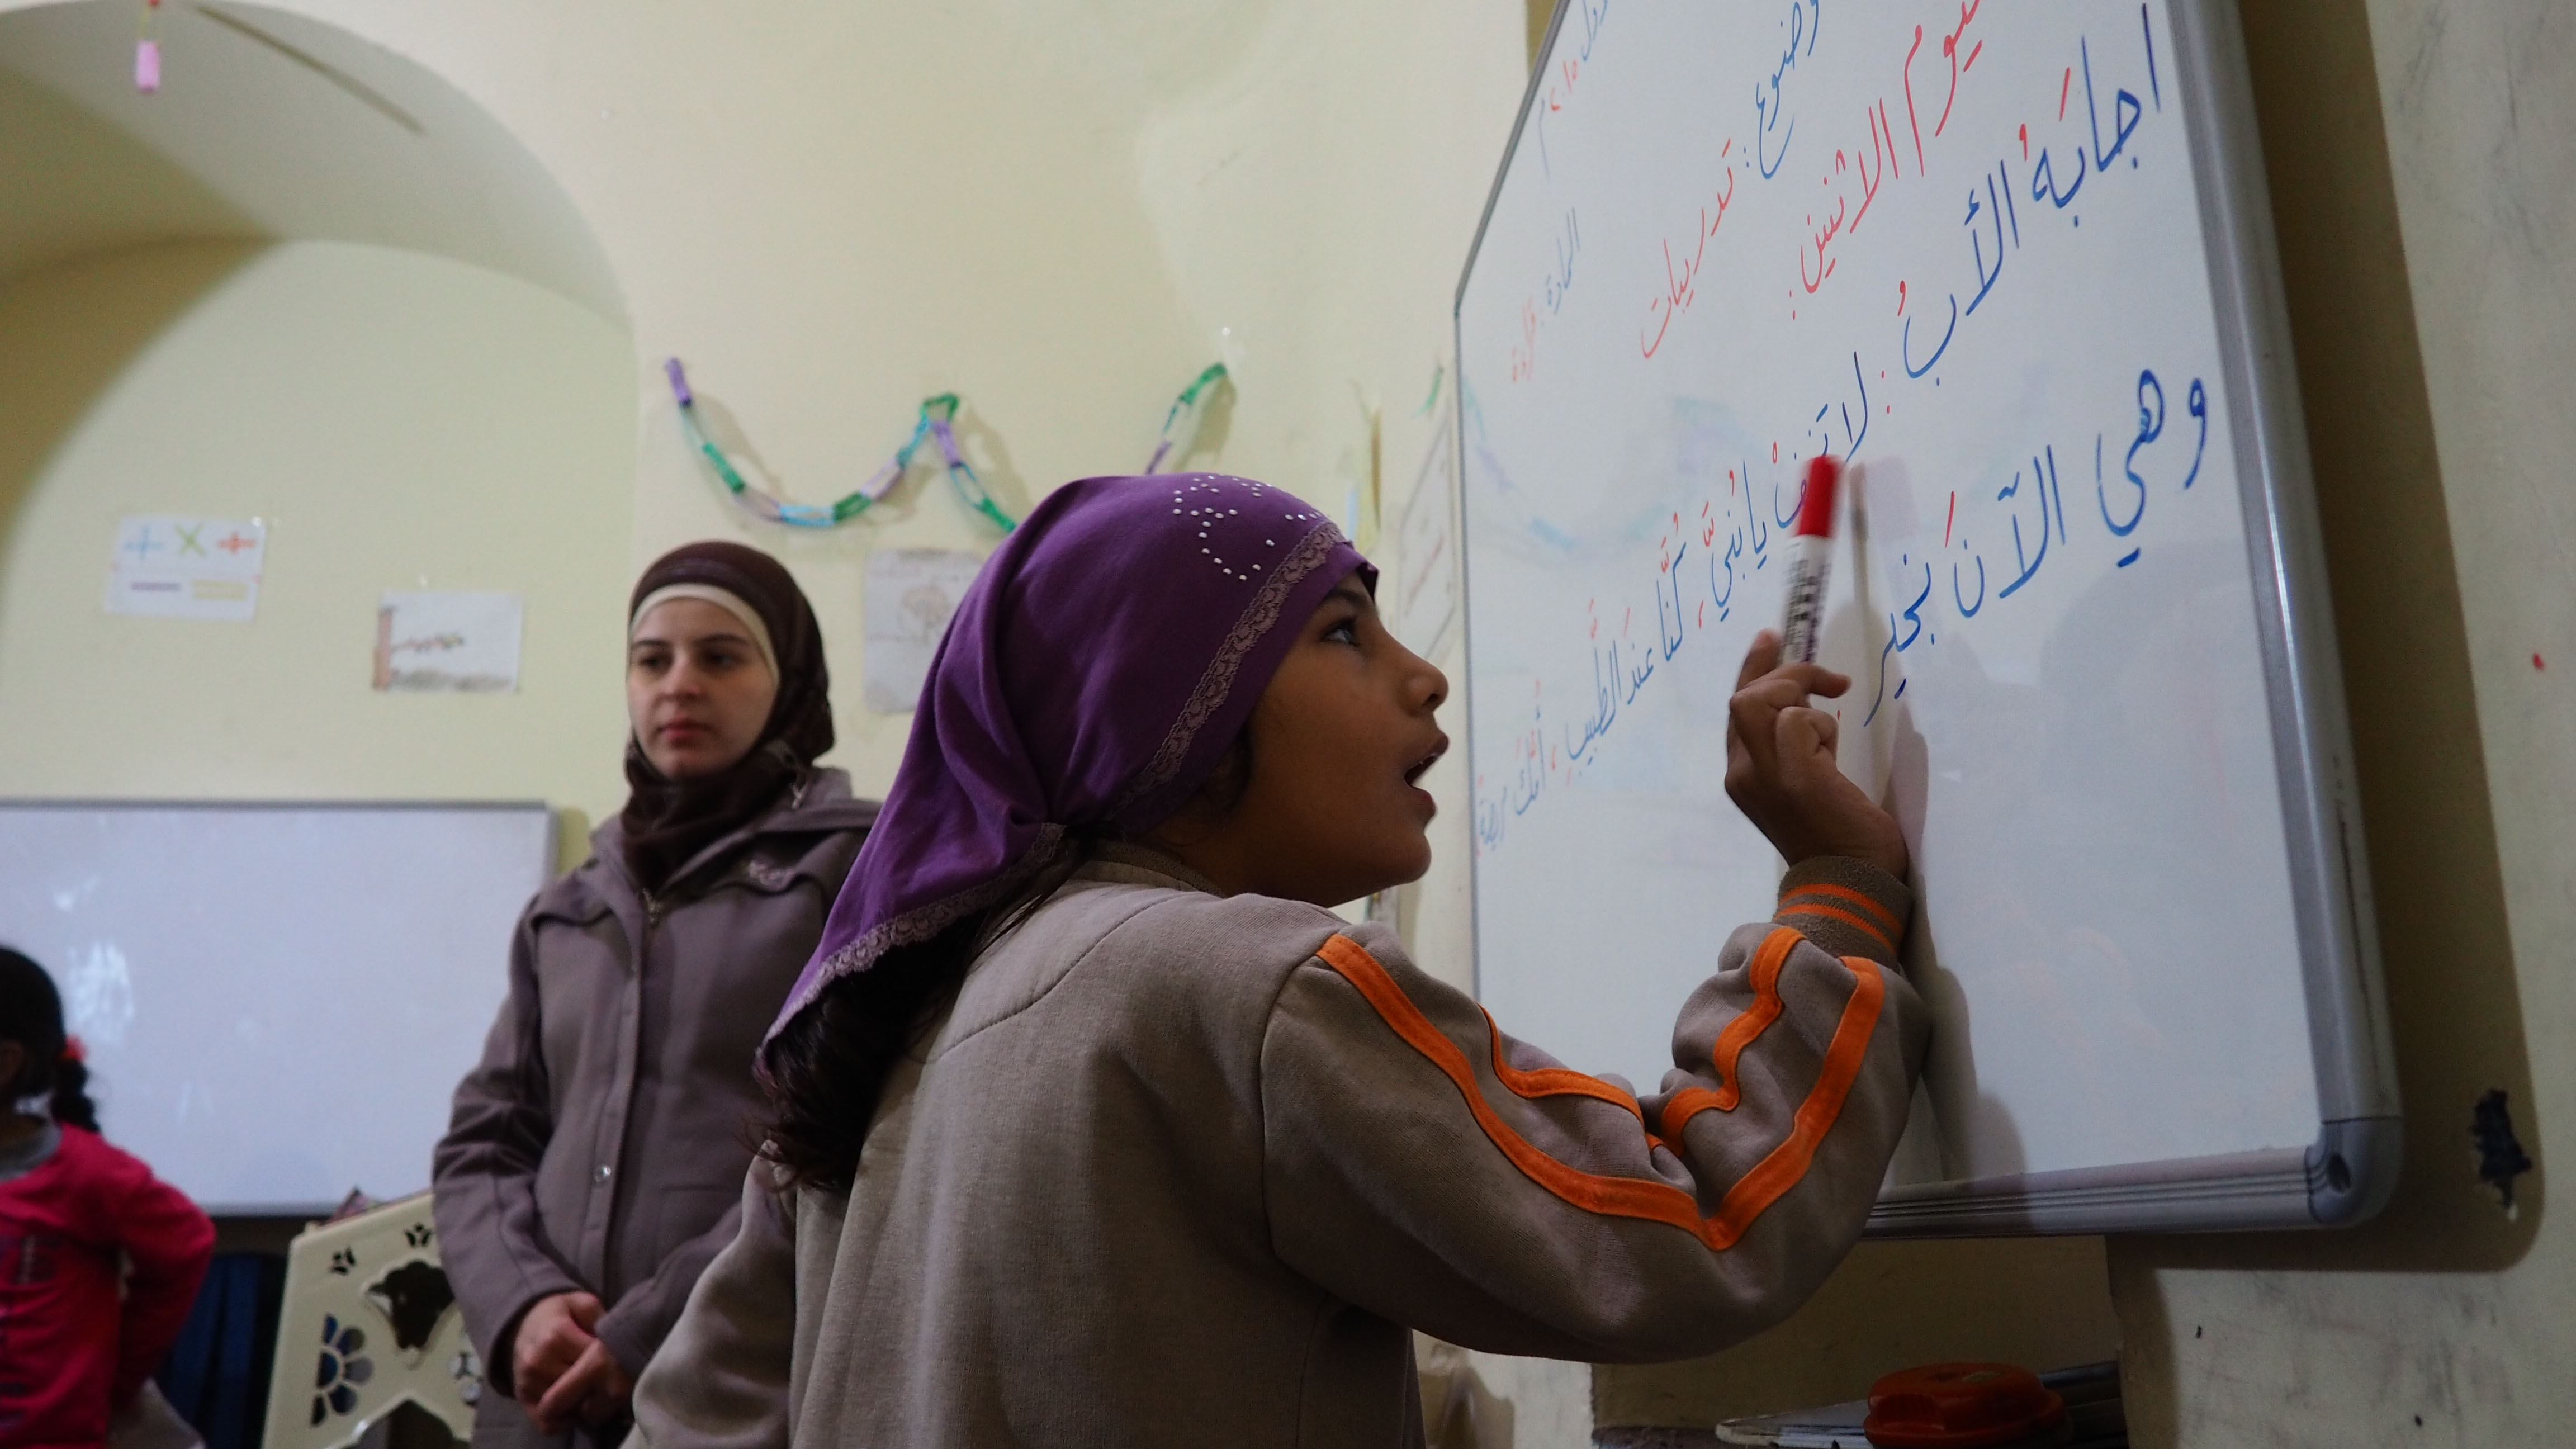 Inside a free school for Syrians hosted within a mosque in Istanbul, a mentally disabled child is asked to solve some Arabic grammar exercises in front of her class